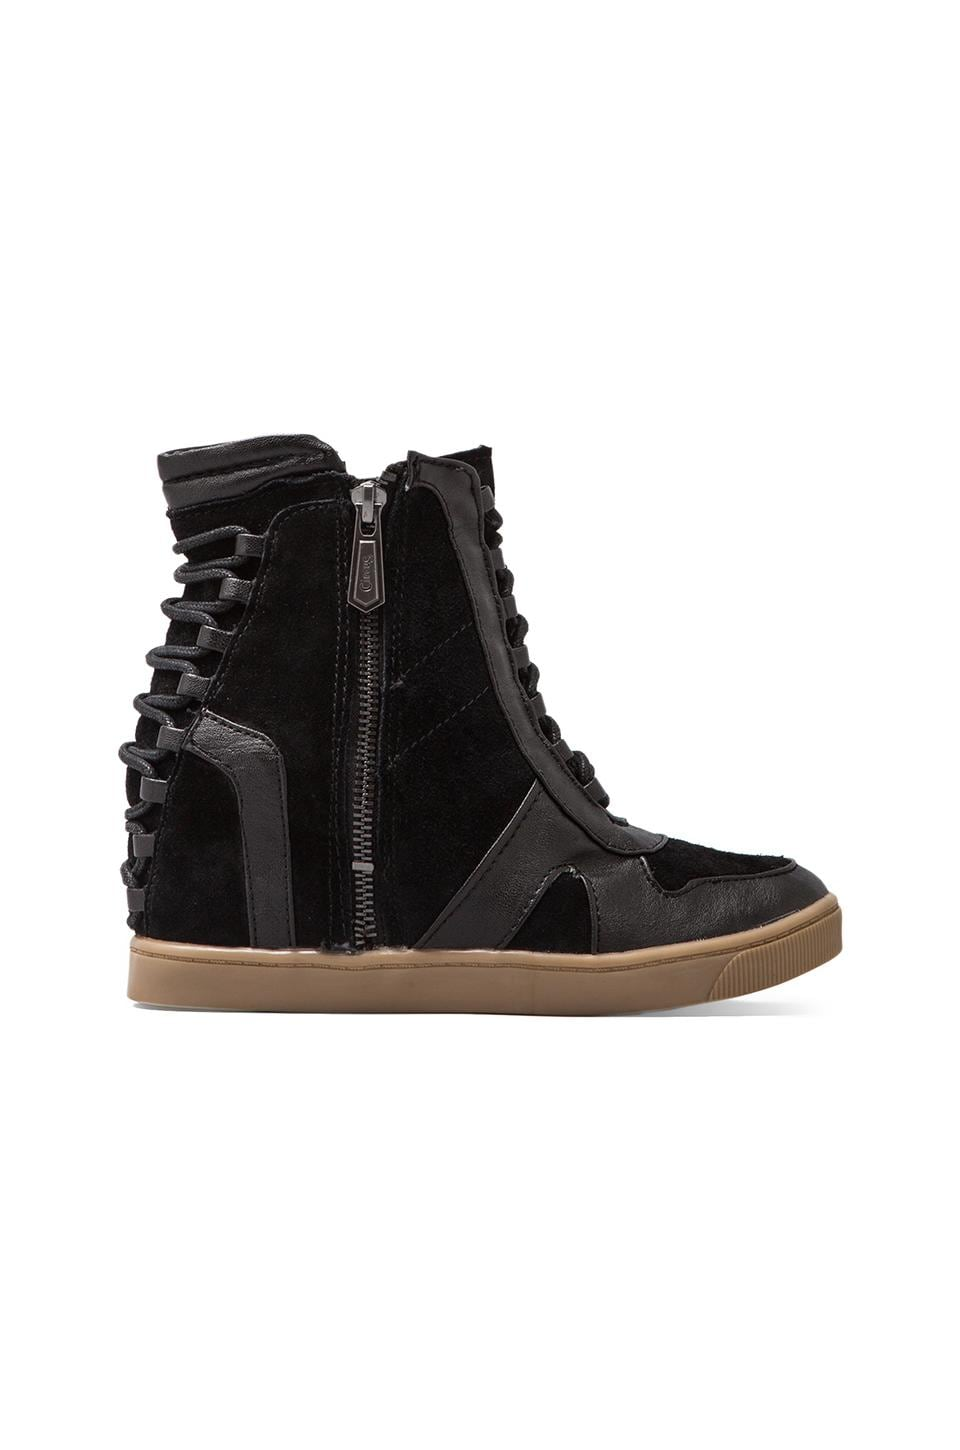 Circus by Sam Edelman Waverly Sneaker in Black